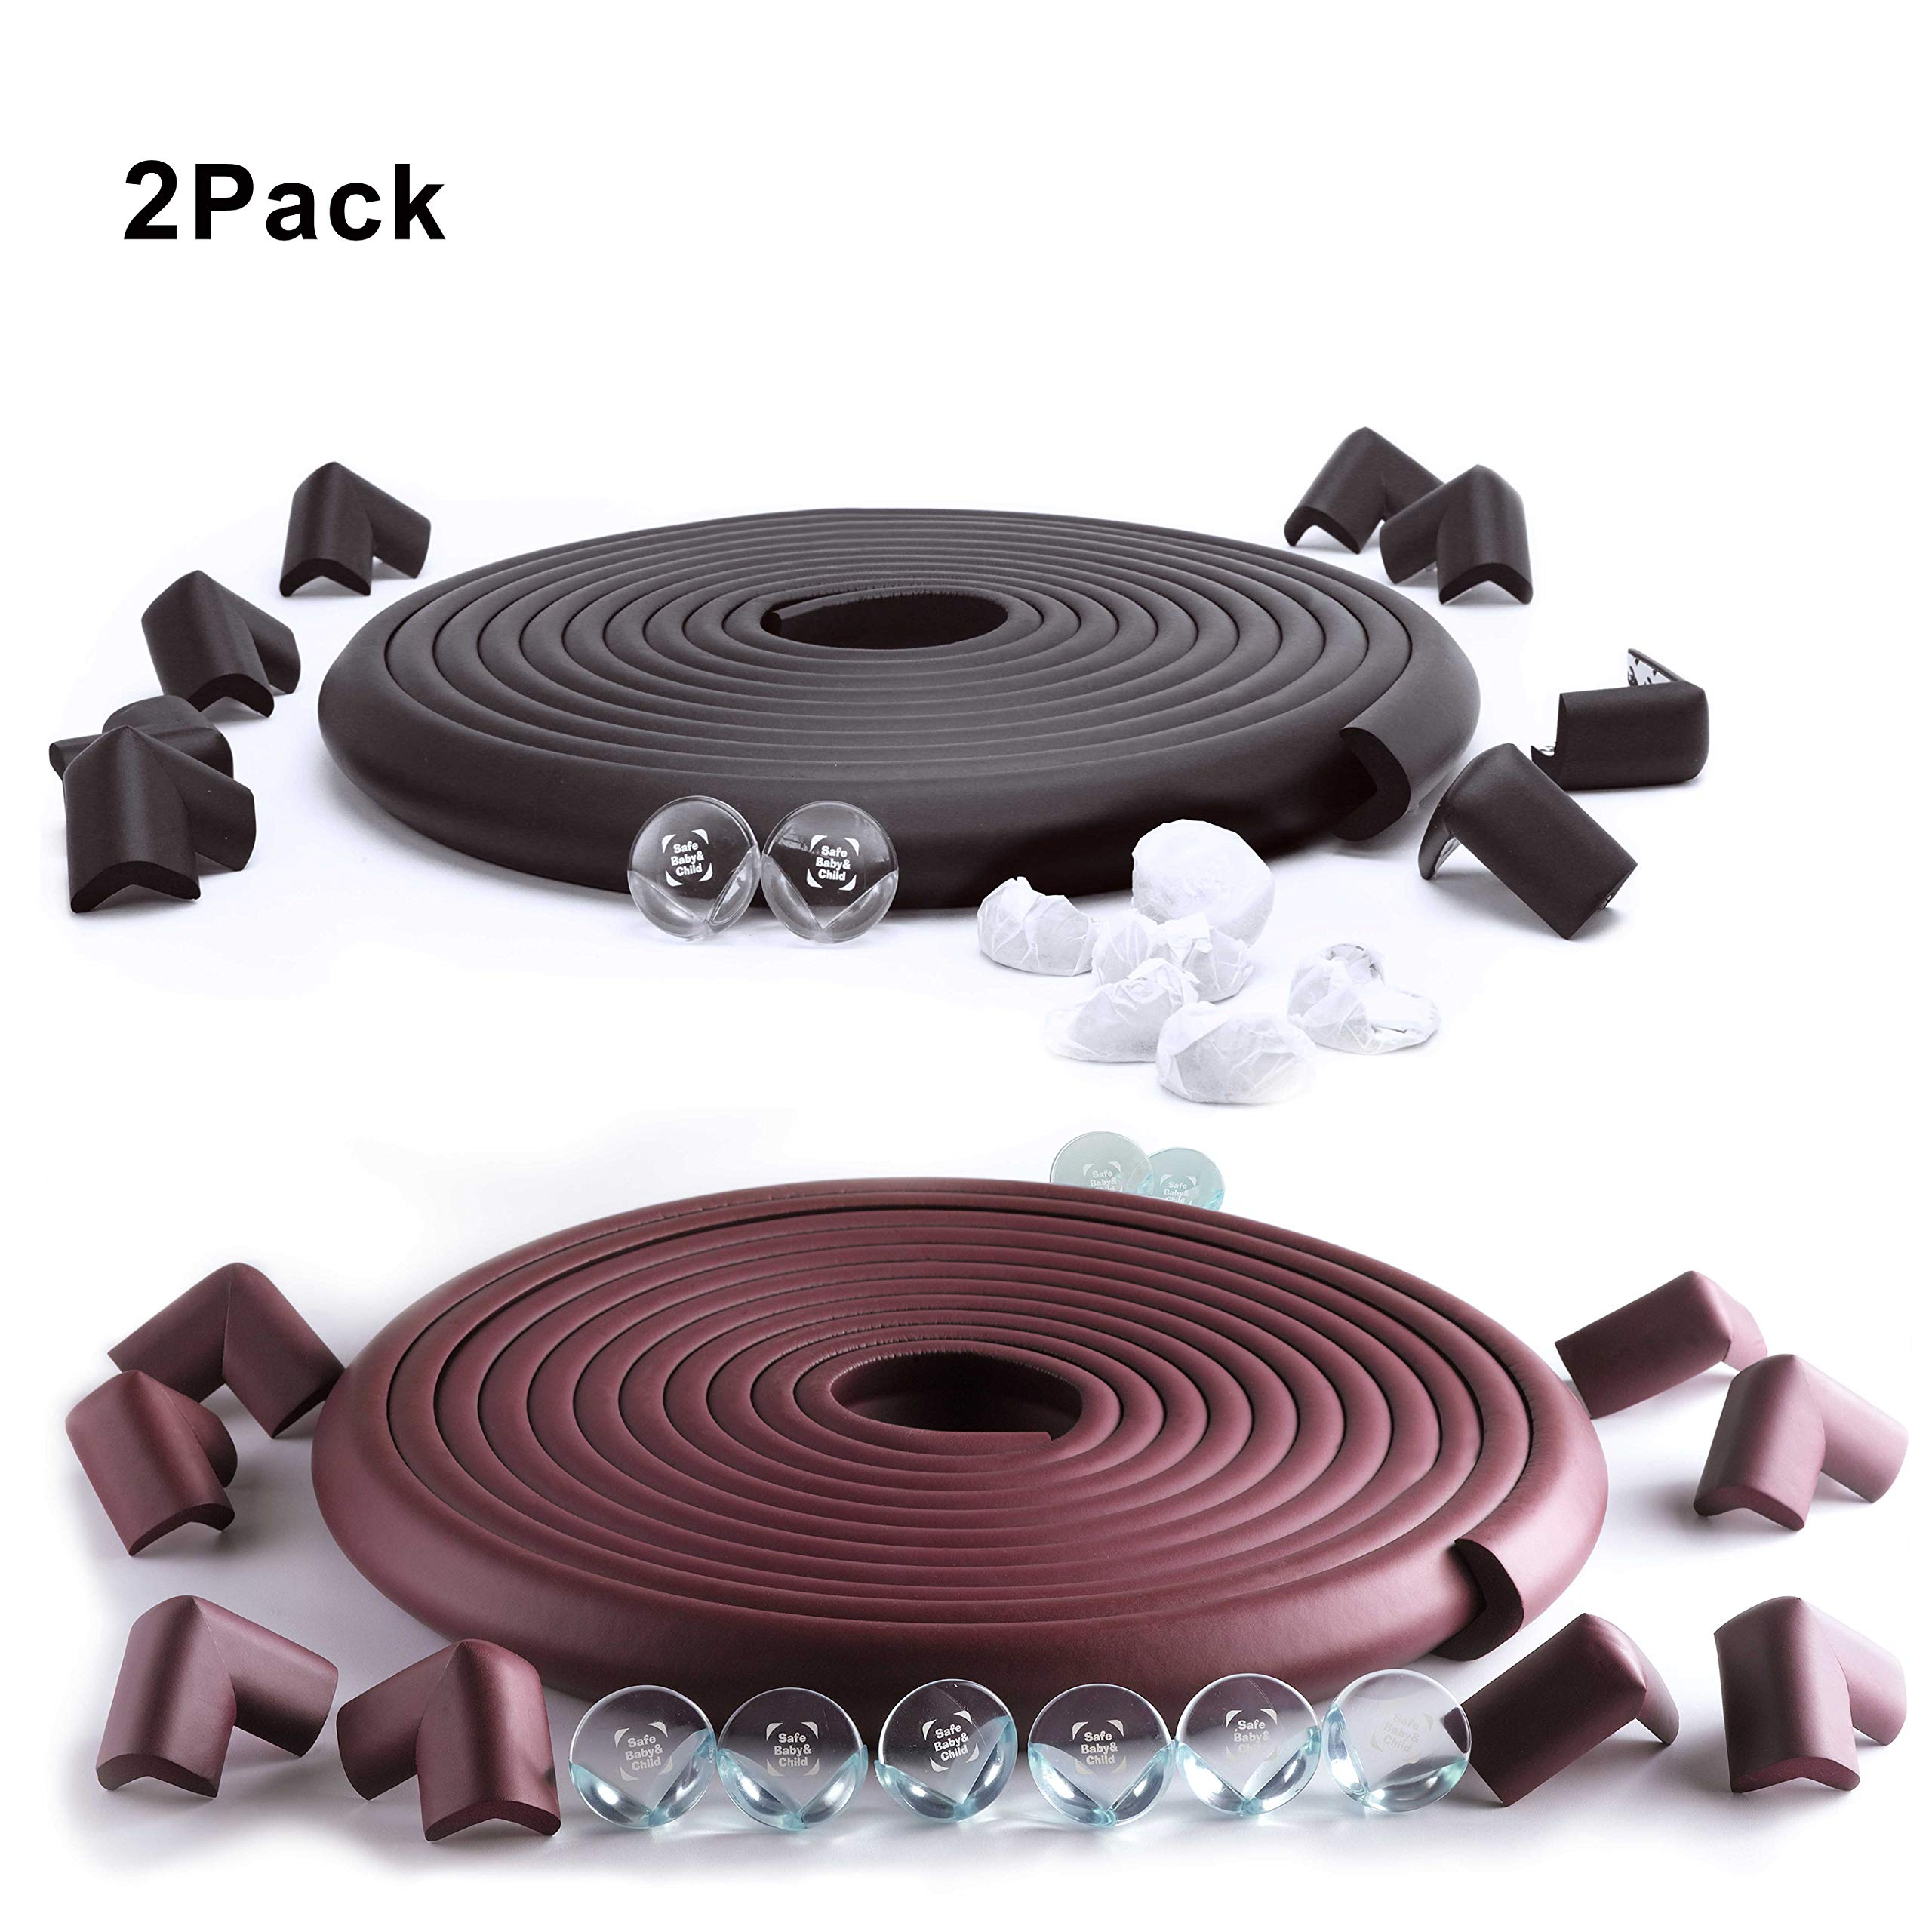 SafeBaby & Child Proofing 23.2ft Set. 16 Corners Guards Baby proofing Edge. Clear Protective Bumpers for Furniture. Cushion Foam Strip Brick pad childproof Fireplace Guard for Toddlers Black Brown